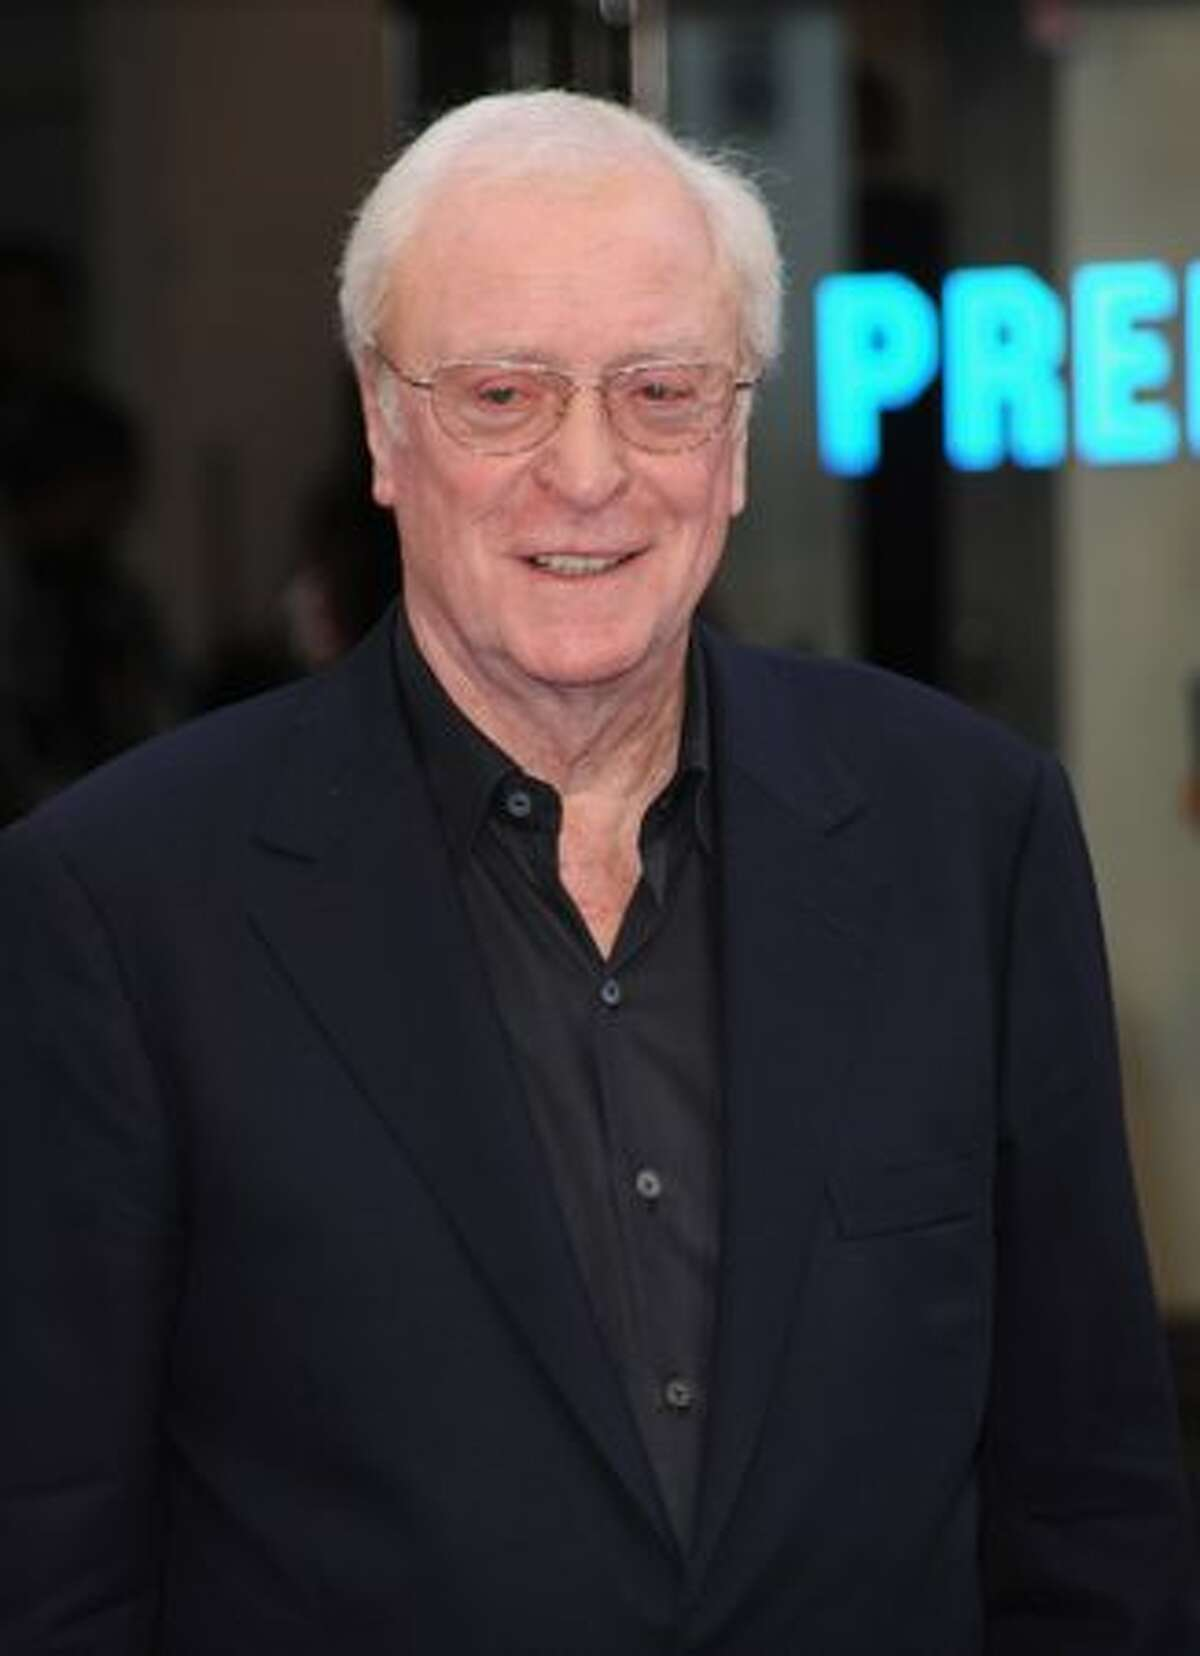 Sir Michael Caine attends the UK film premiere for 'Inception' at the Odeon Leicester Square.